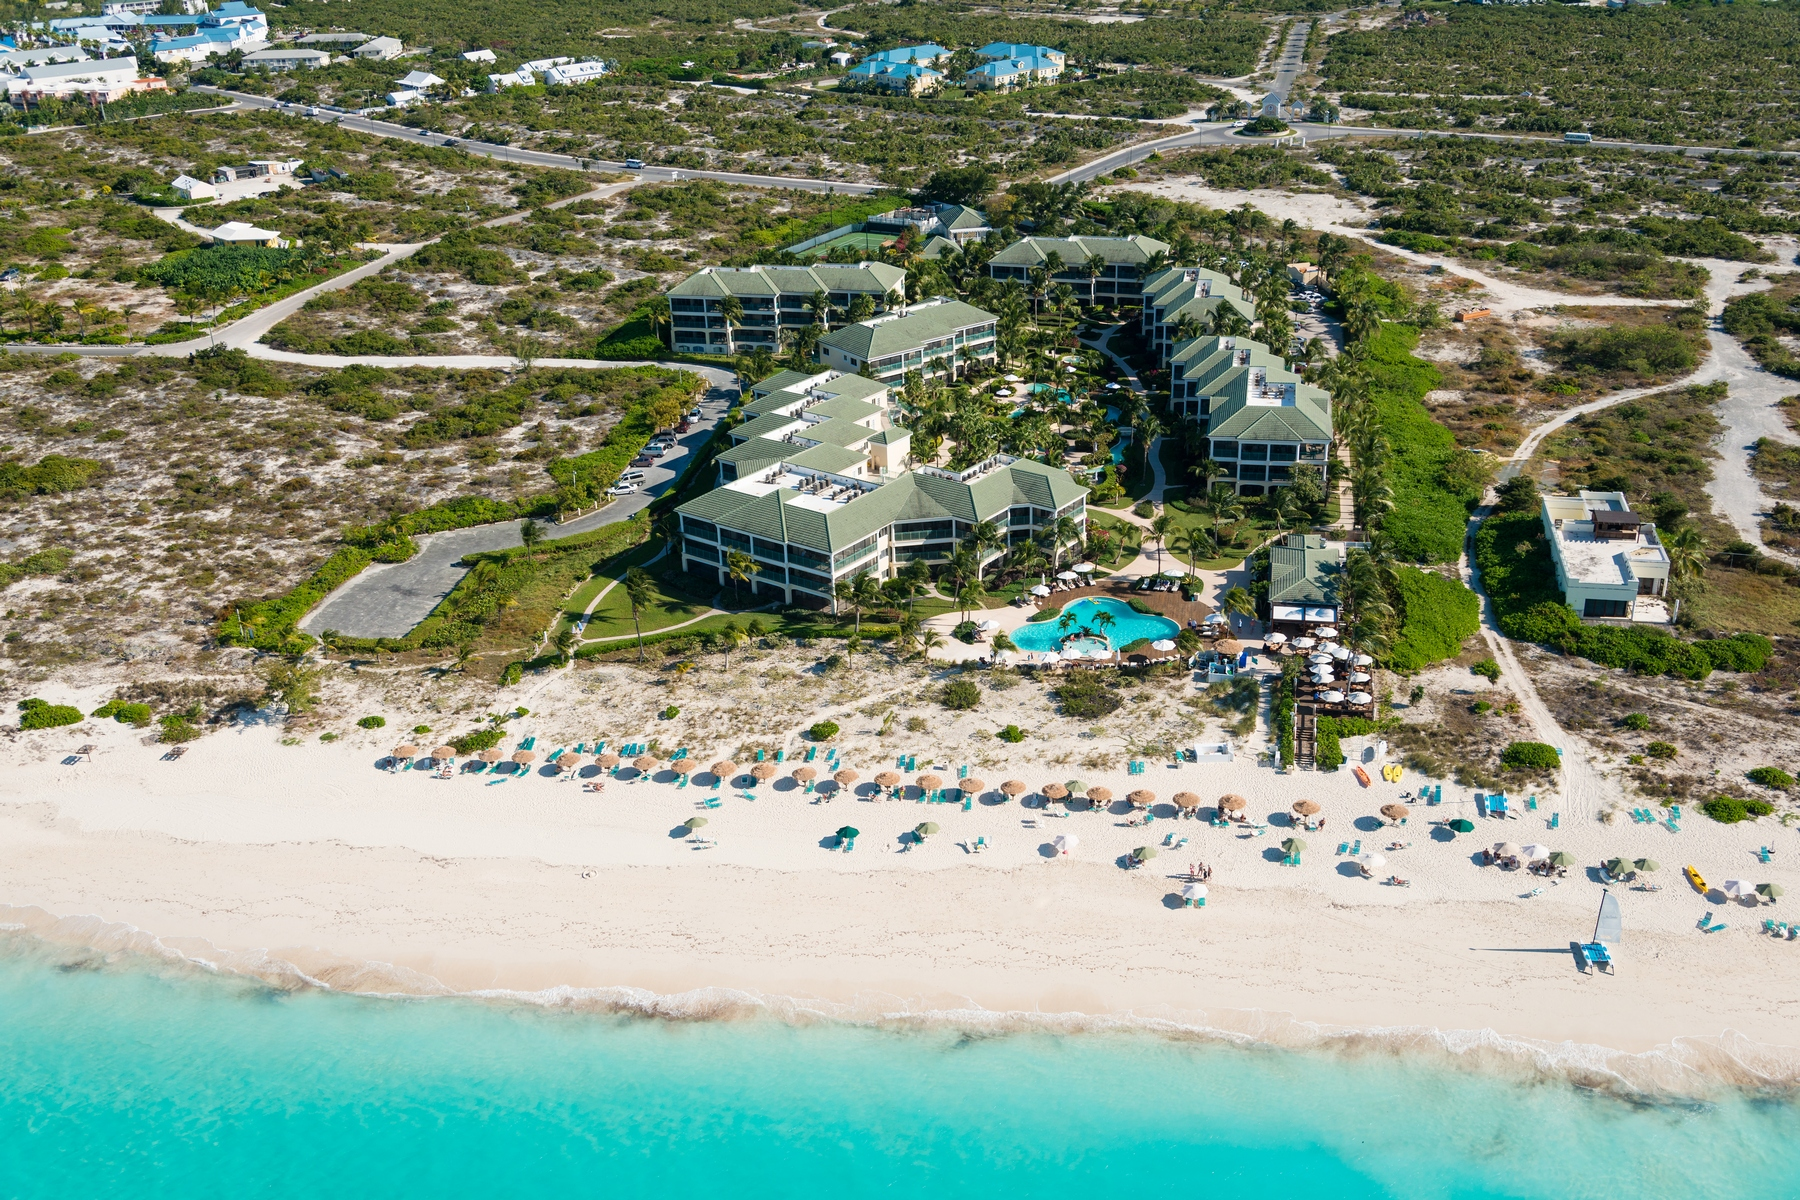 Condominium for Sale at The Sands at Grace Bay - Suite 5303 The Sands On Grace Bay, Grace Bay, Providenciales Turks And Caicos Islands